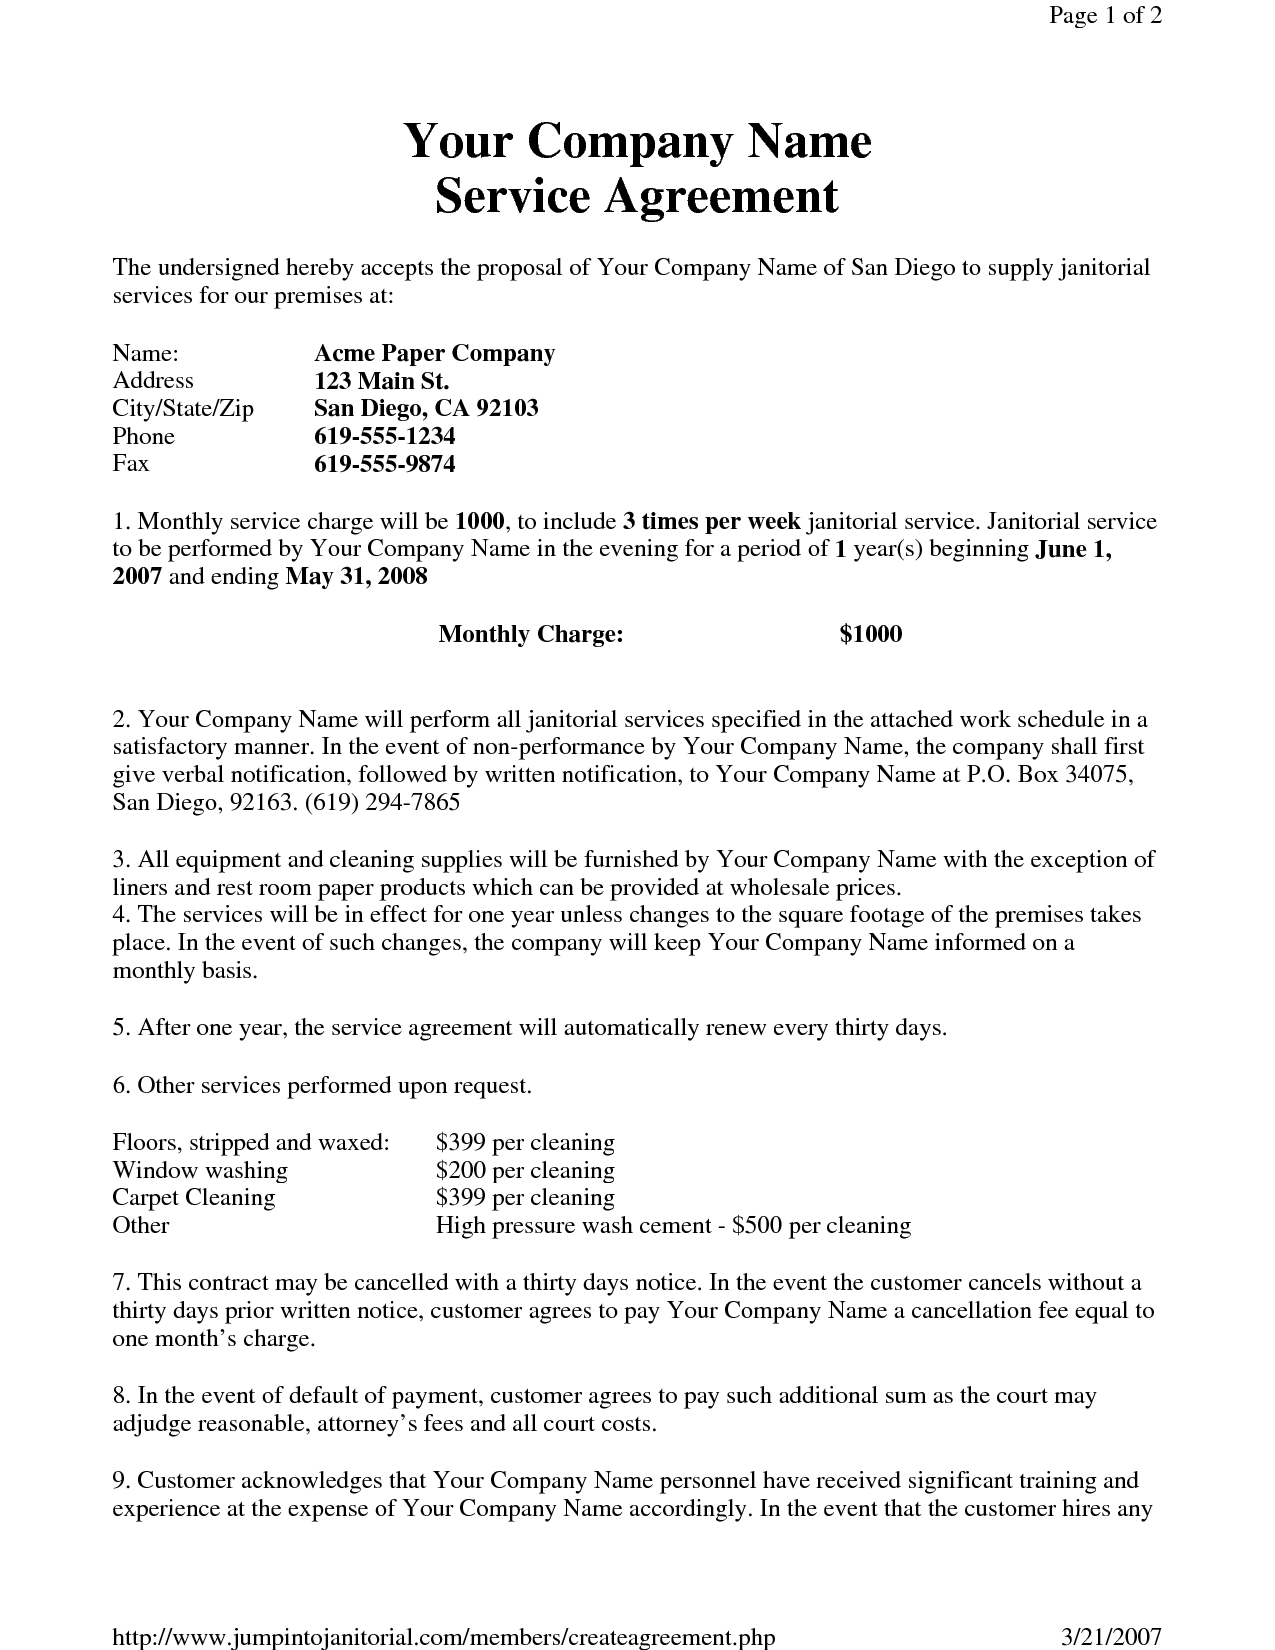 Janitorial Service Agreement By Hgh Sample